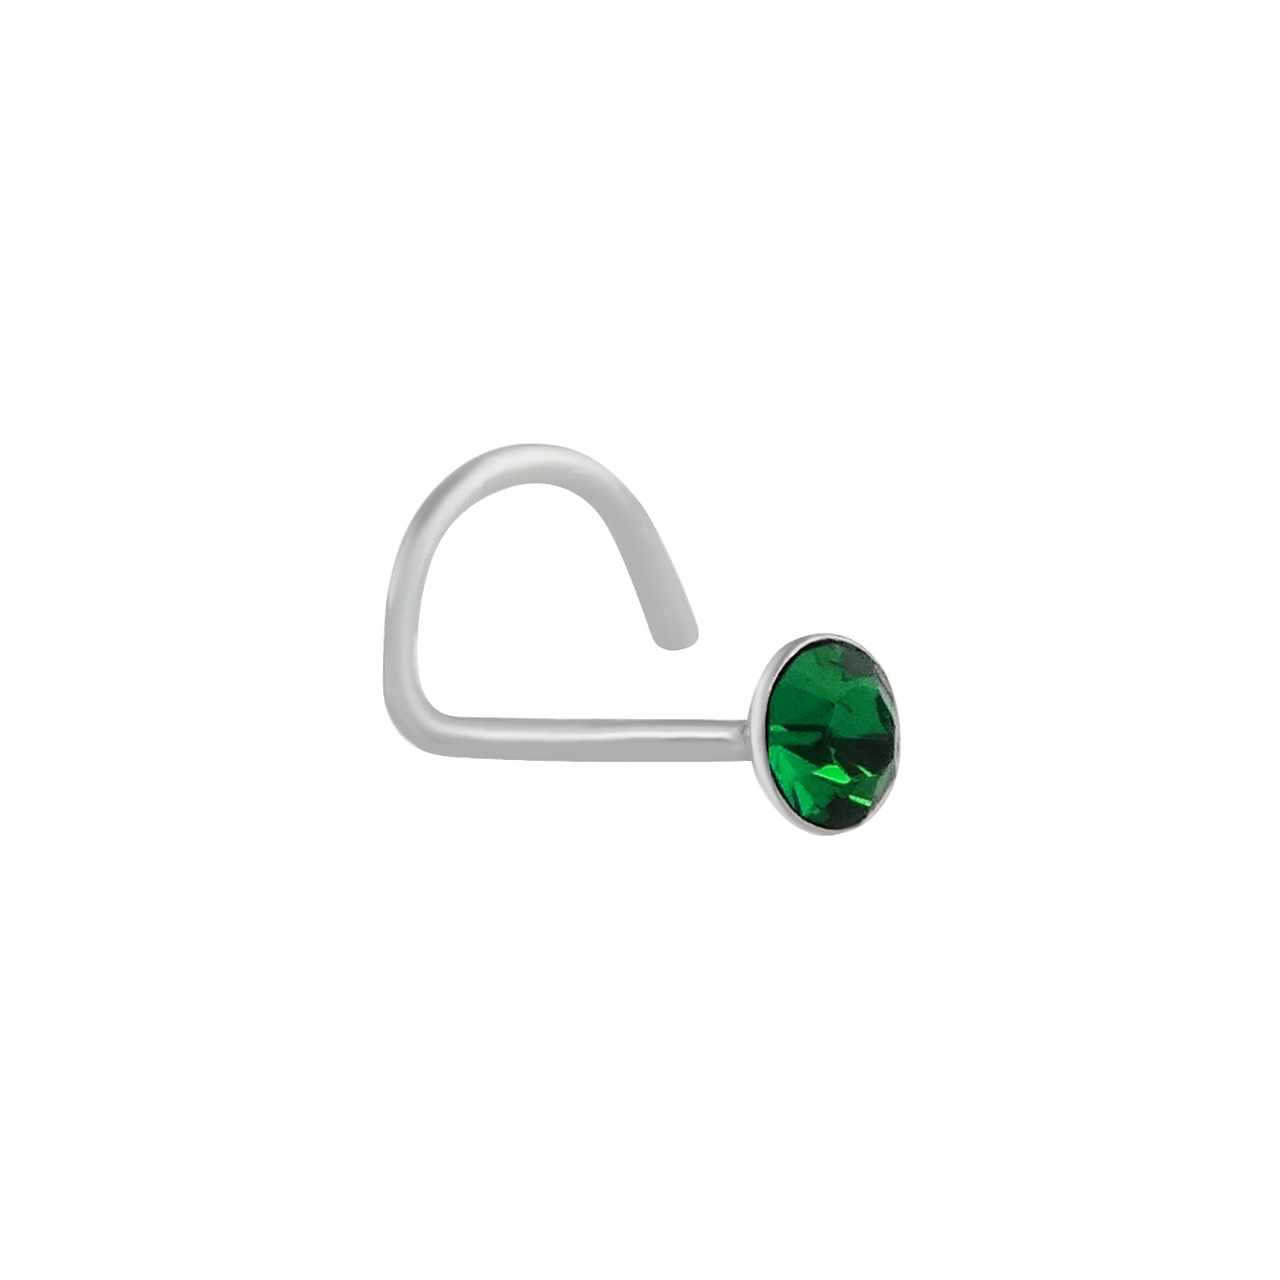 Round Green CZ Nose Stud with Nostril Screw - 925 Sterling Silver